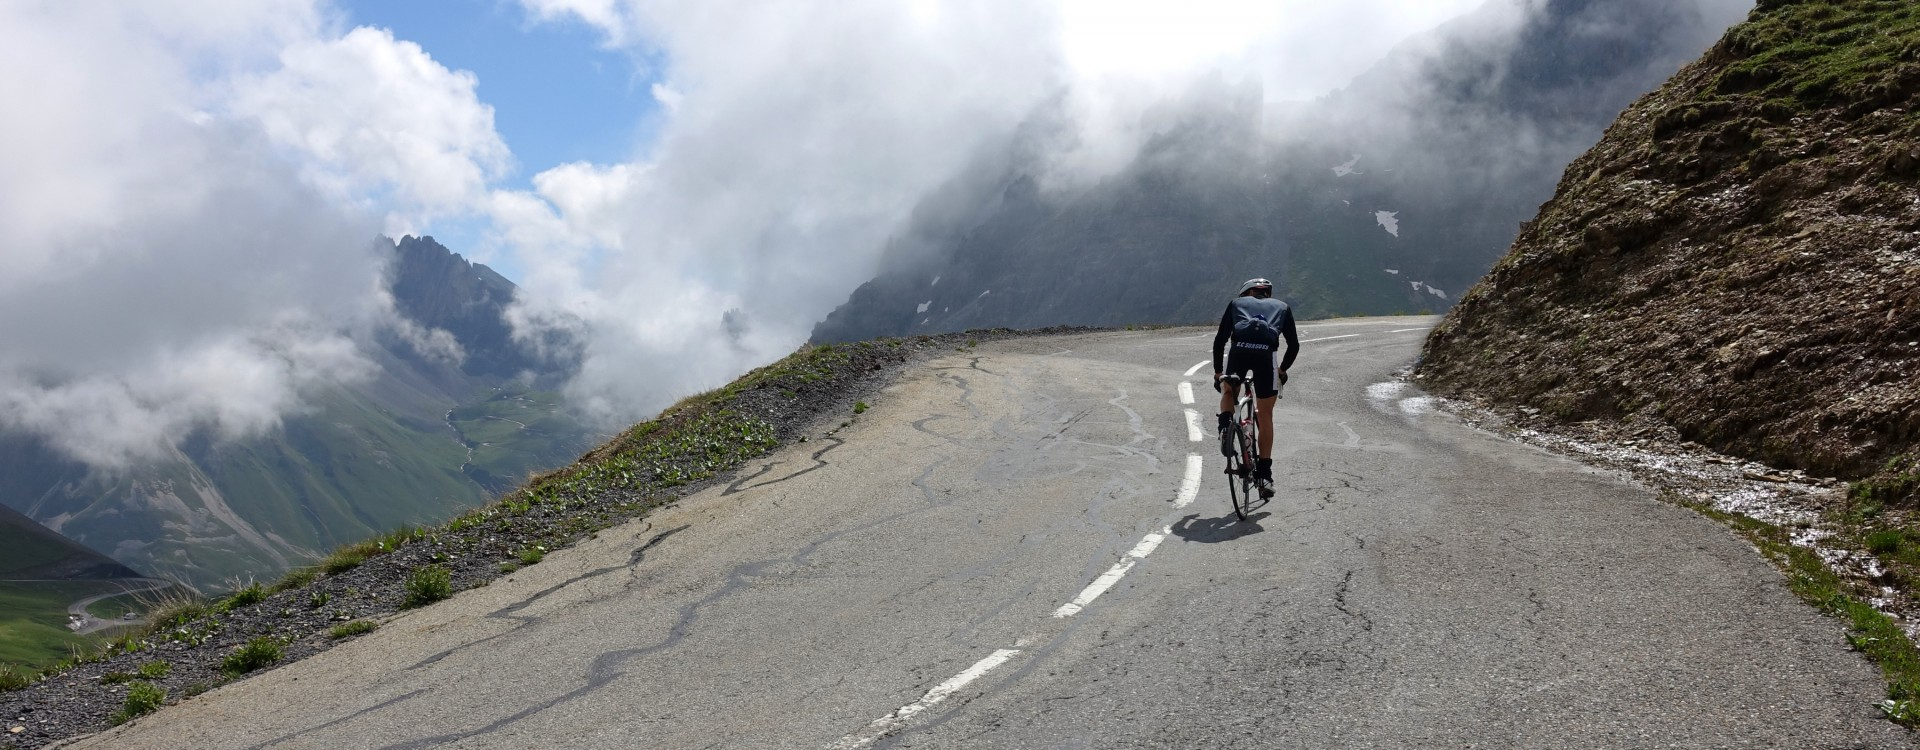 On the ascent of the Galibier